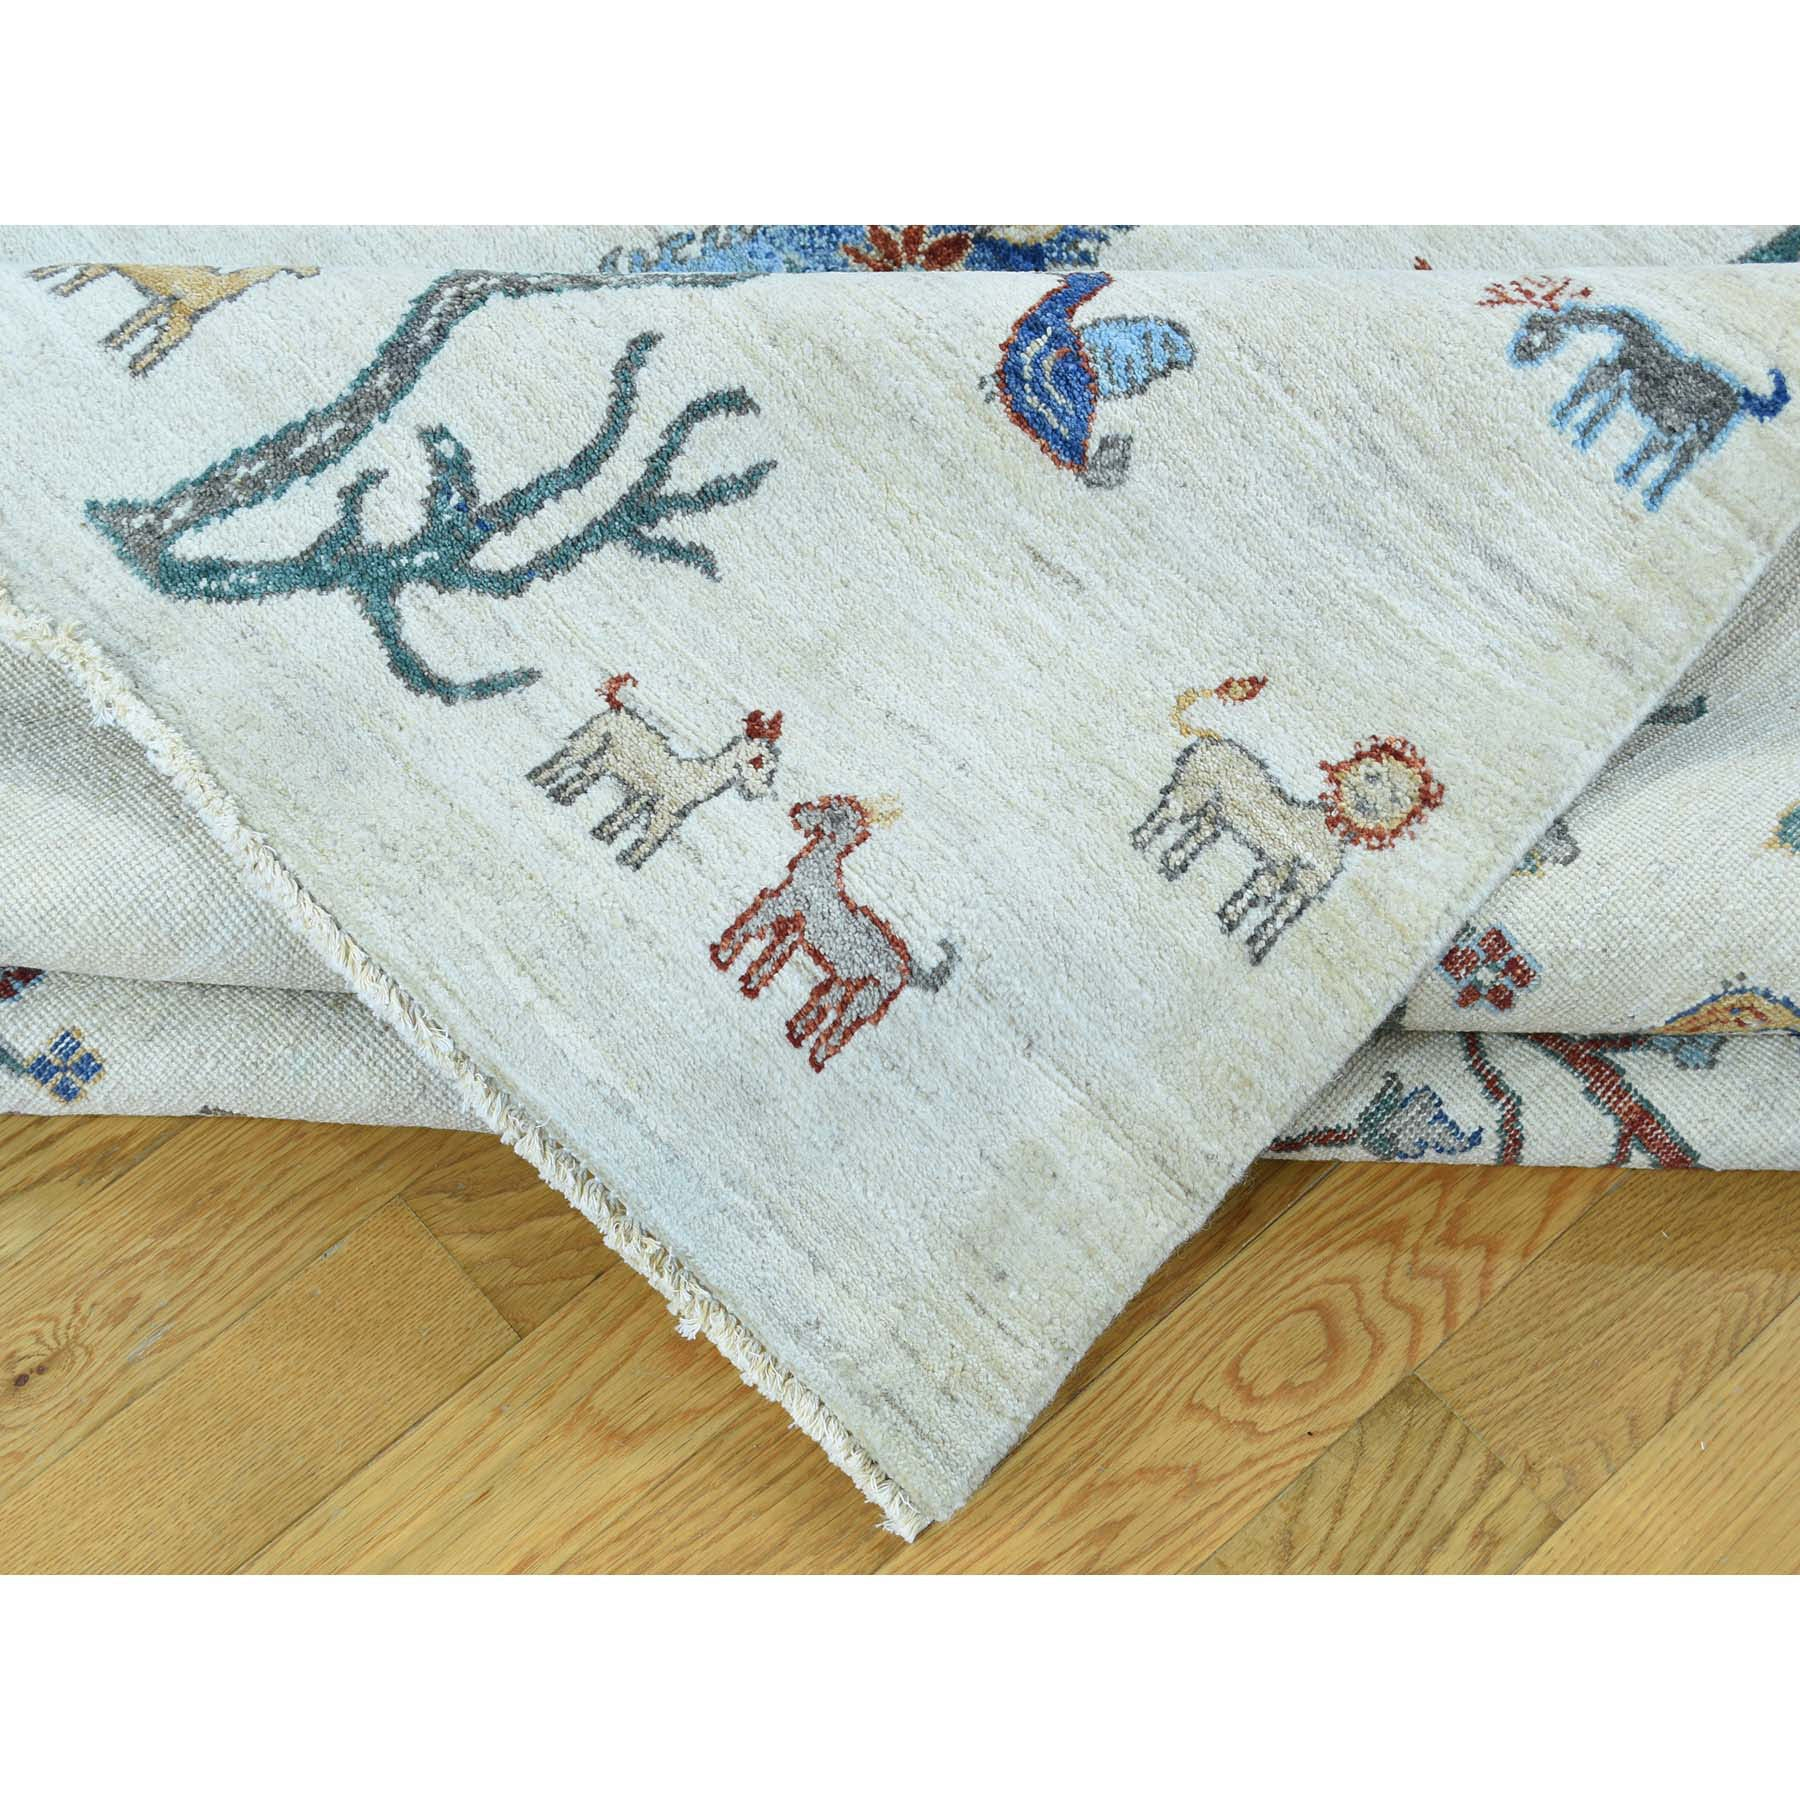 "Handmade Tribal & Geometric Rectangle Rug > Design# SH32759 > Size: 10'-0"" x 14'-2"" [ONLINE ONLY]"